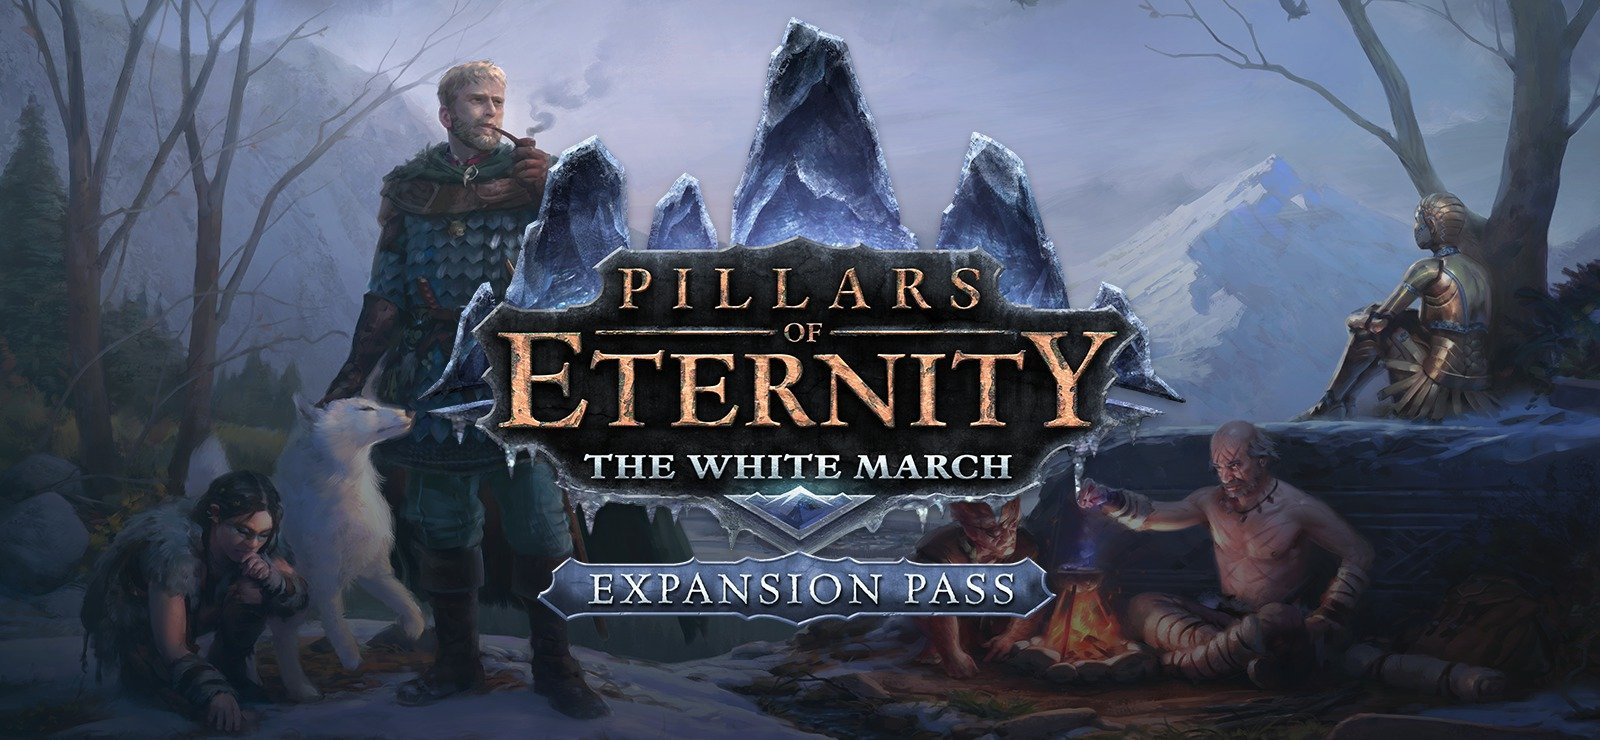 Beneath a Starless Sky: Pillars of Eternity and the Infinity